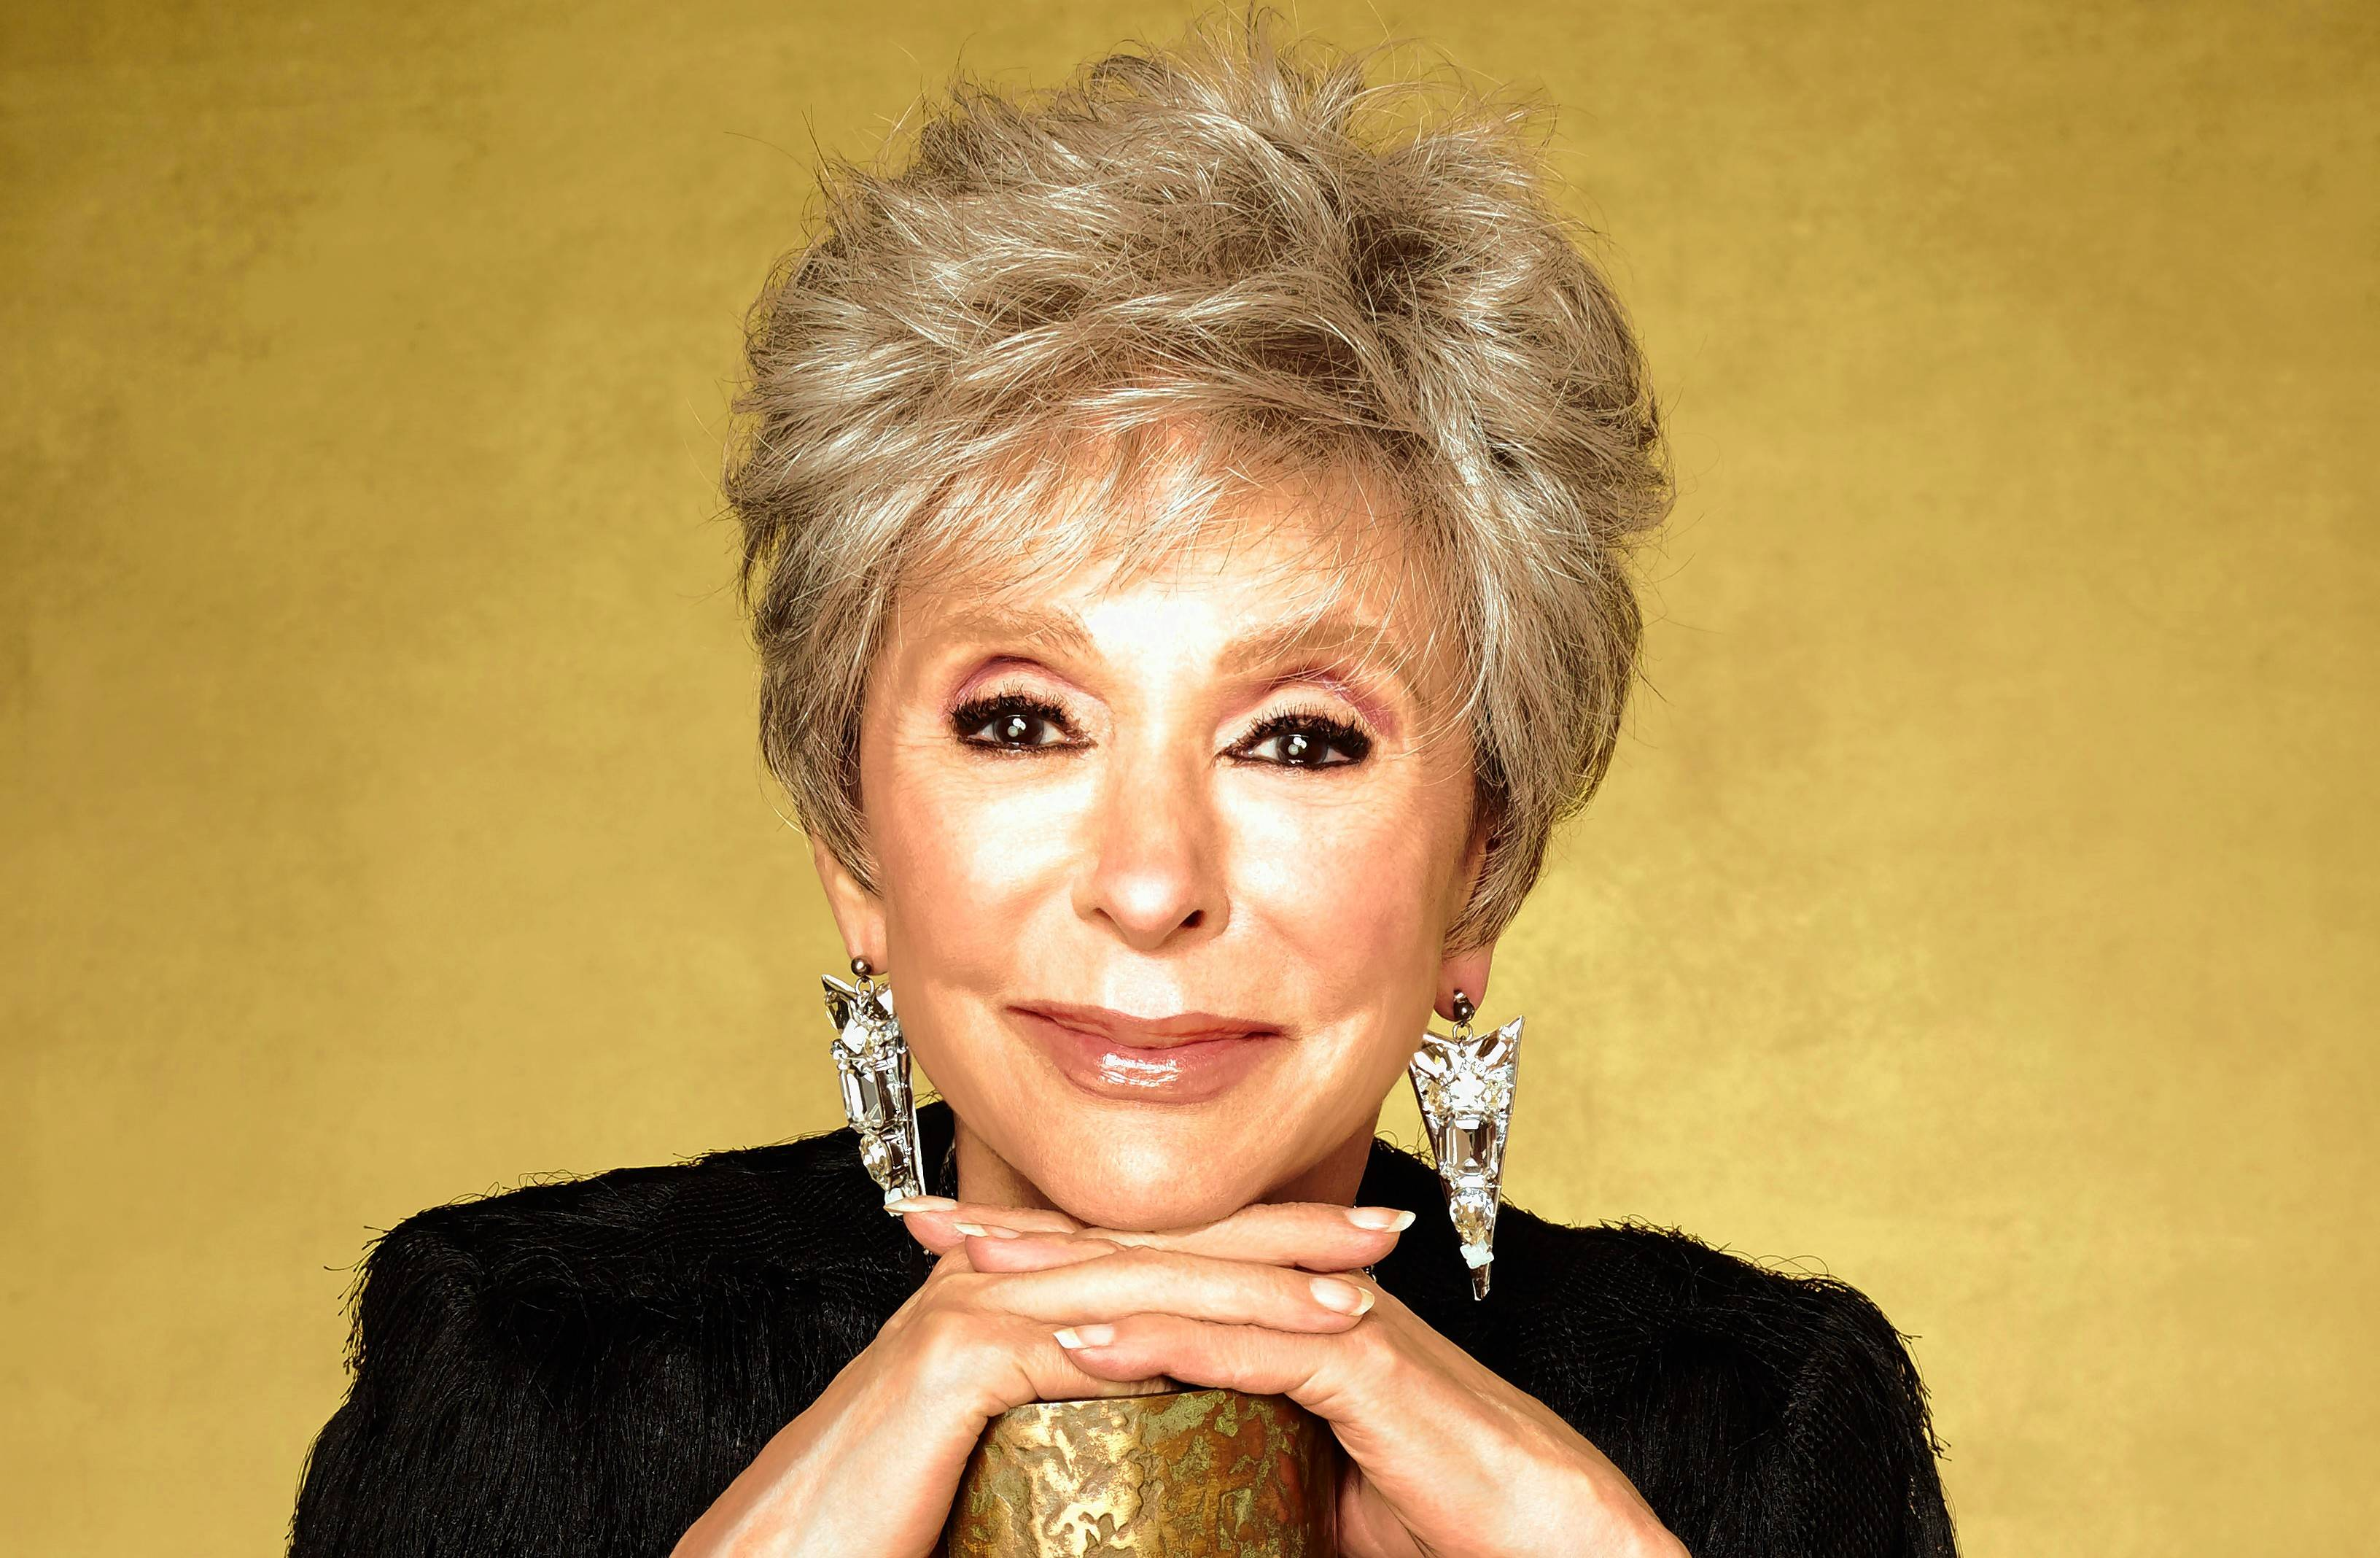 Rita Moreno, one of the few winners of the entertainment Grand Slam — an Emmy, Tony, Grammy and Oscar — appears at the Arcada Theatre Sunday, Feb. 26.